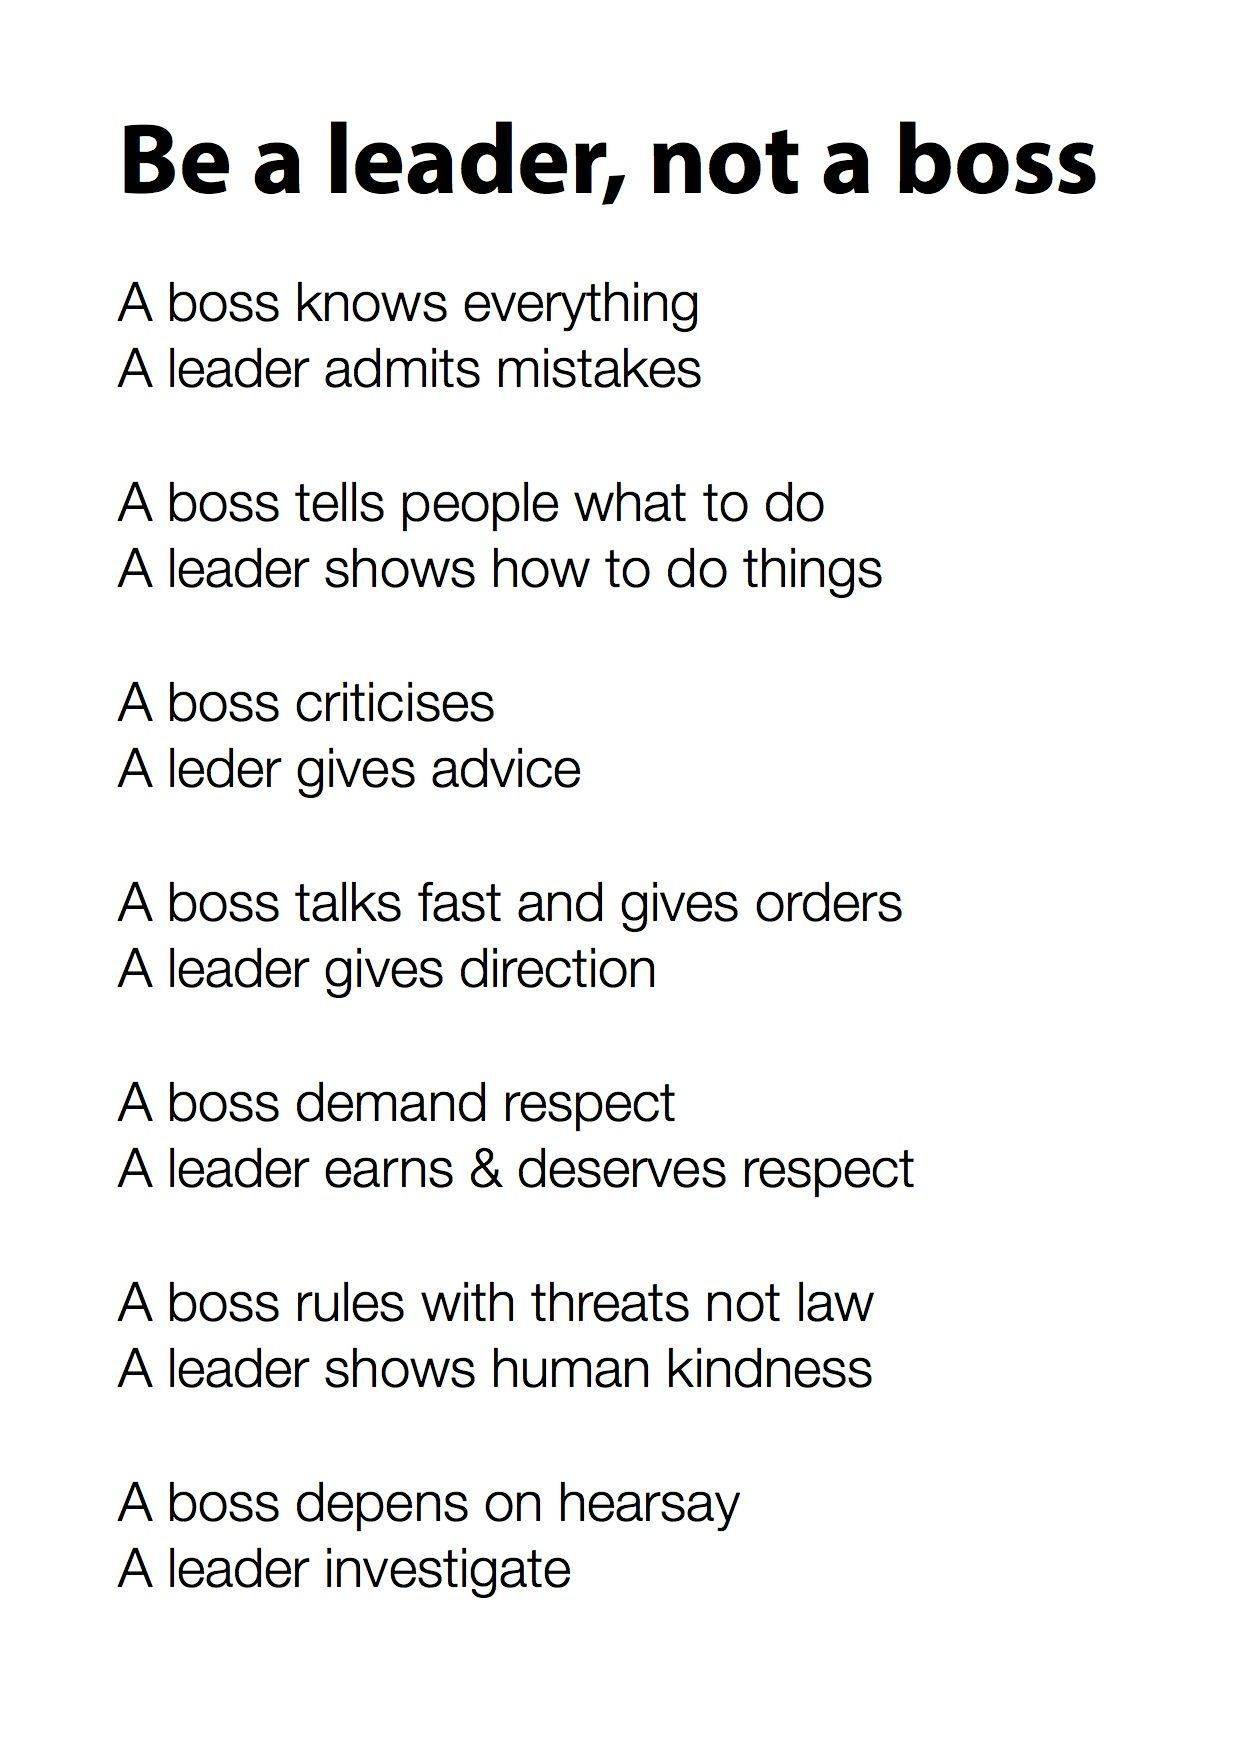 Good Boss Quotes In 2021 Best Boss Quotes Boss Quotes Boss Quotes Funny